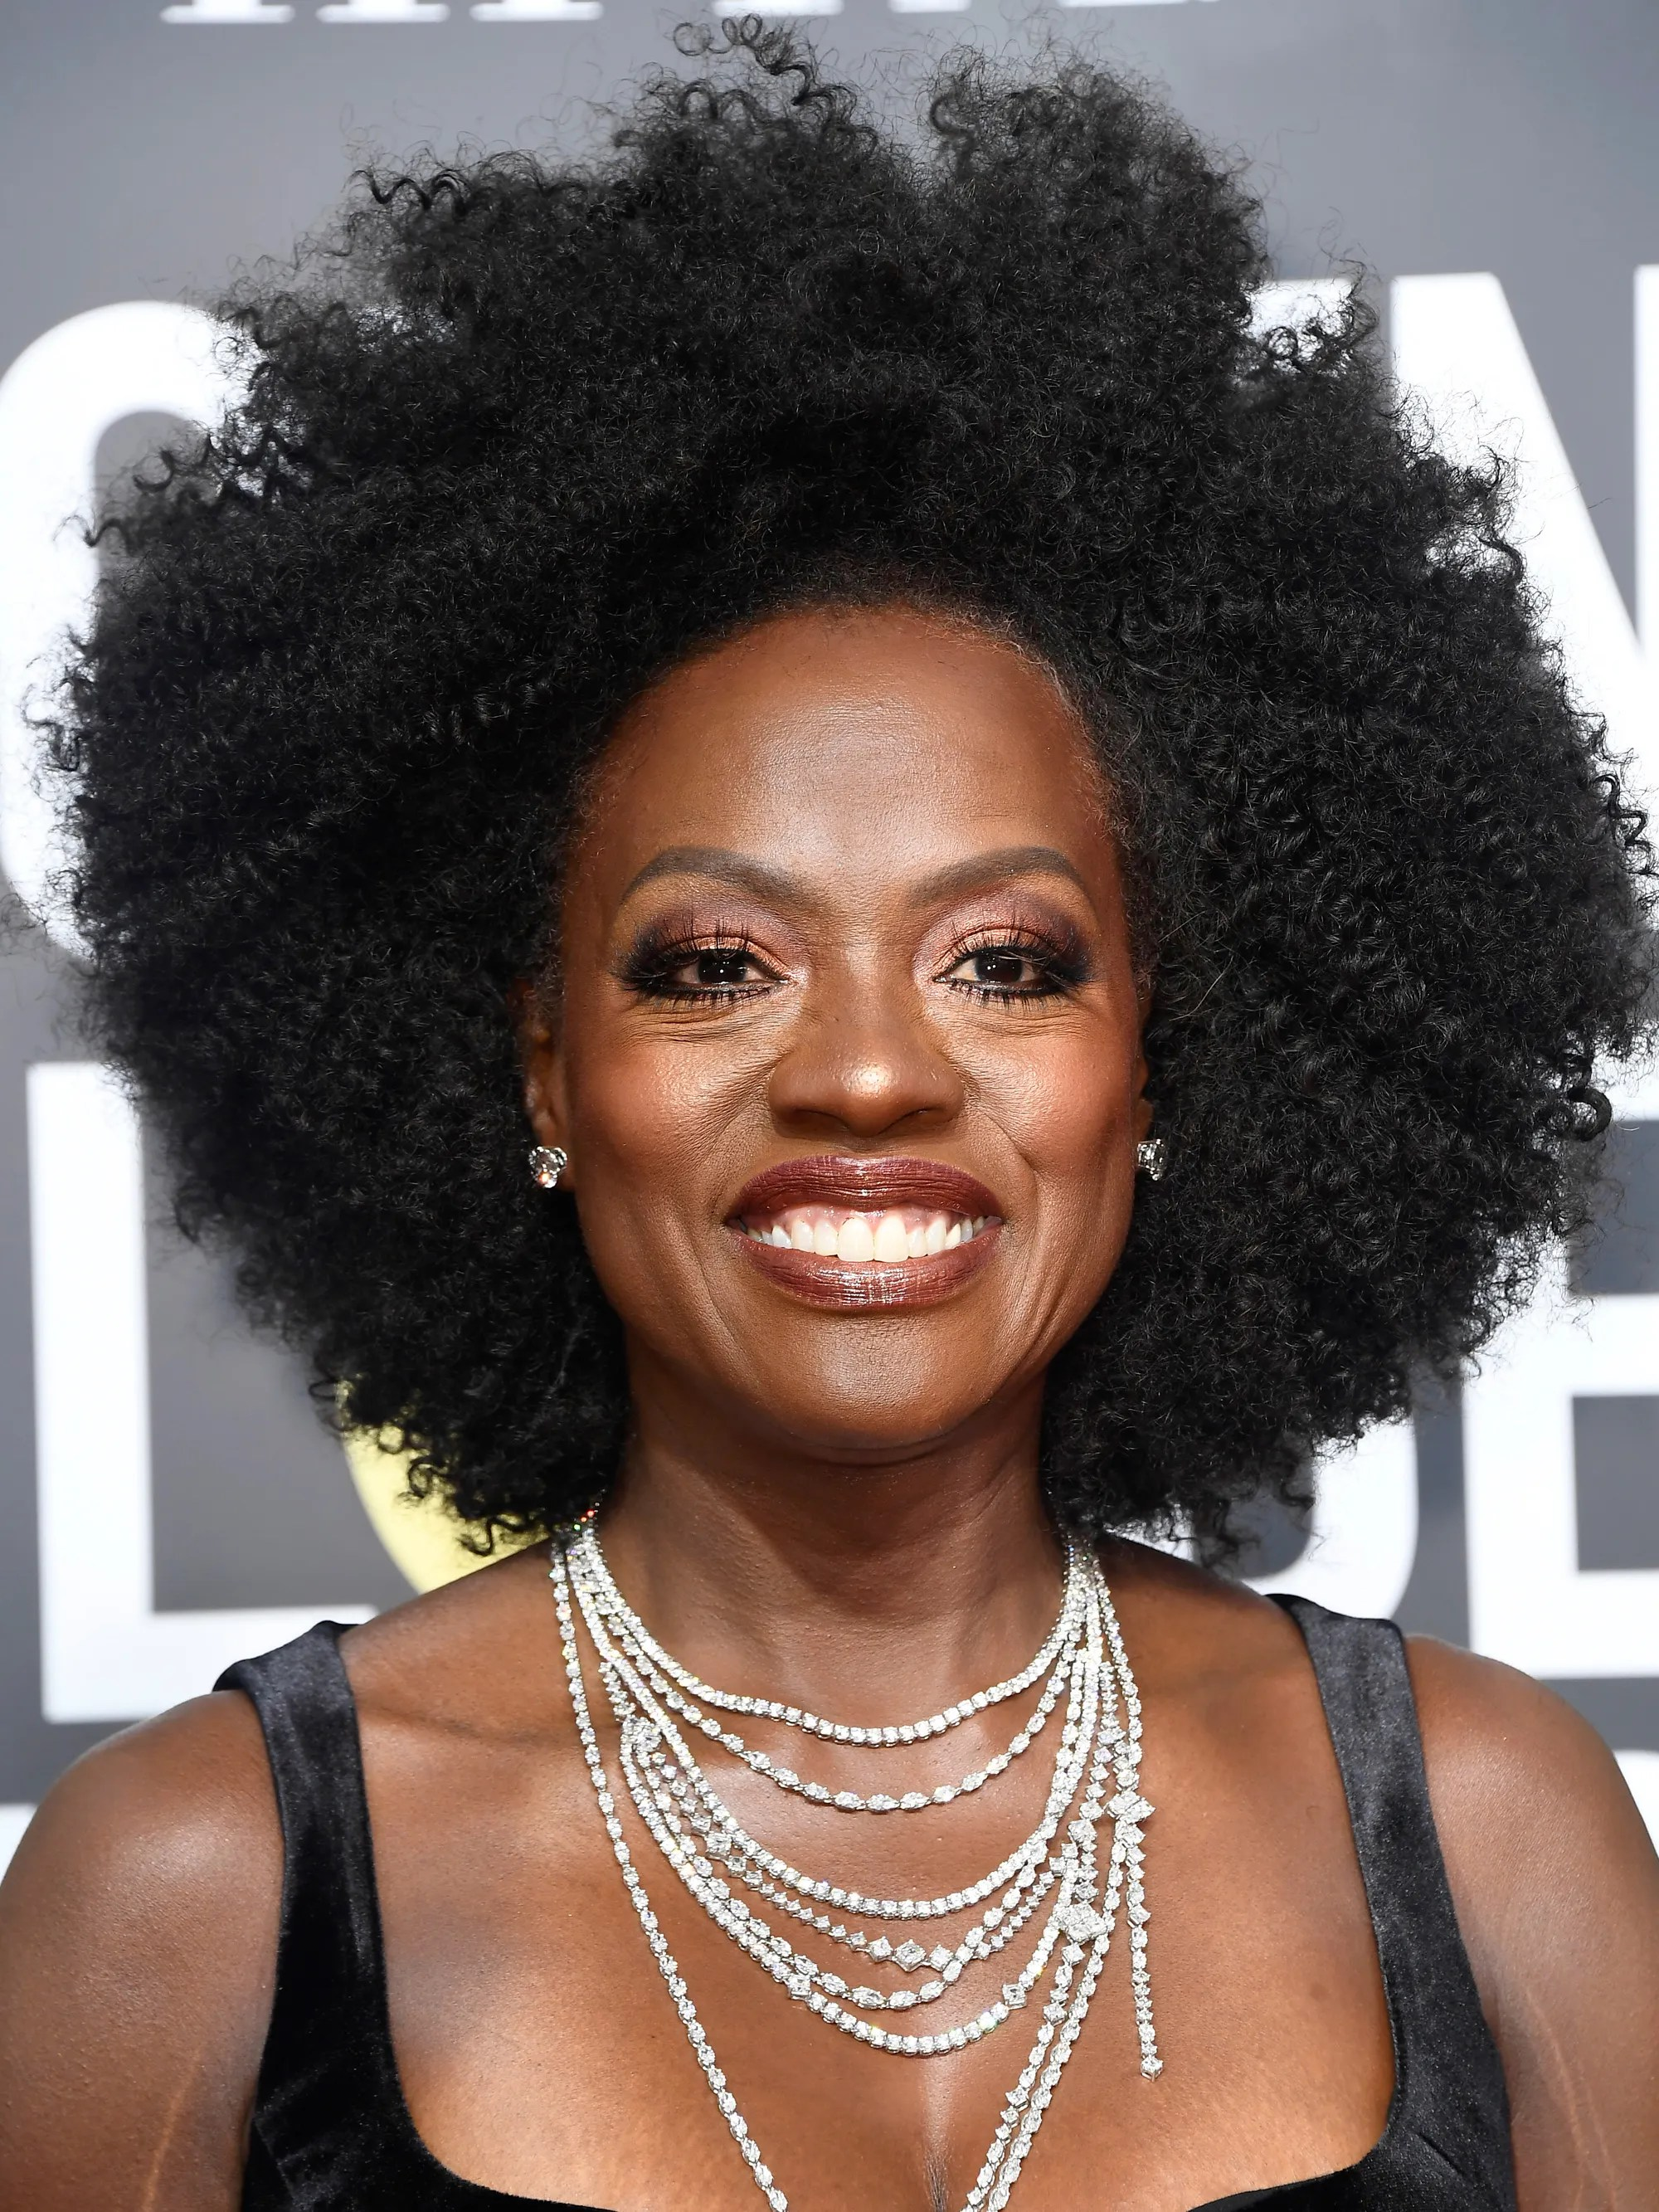 Viola Davis Rocks Her Fro On The Golden Globes Red Carpet